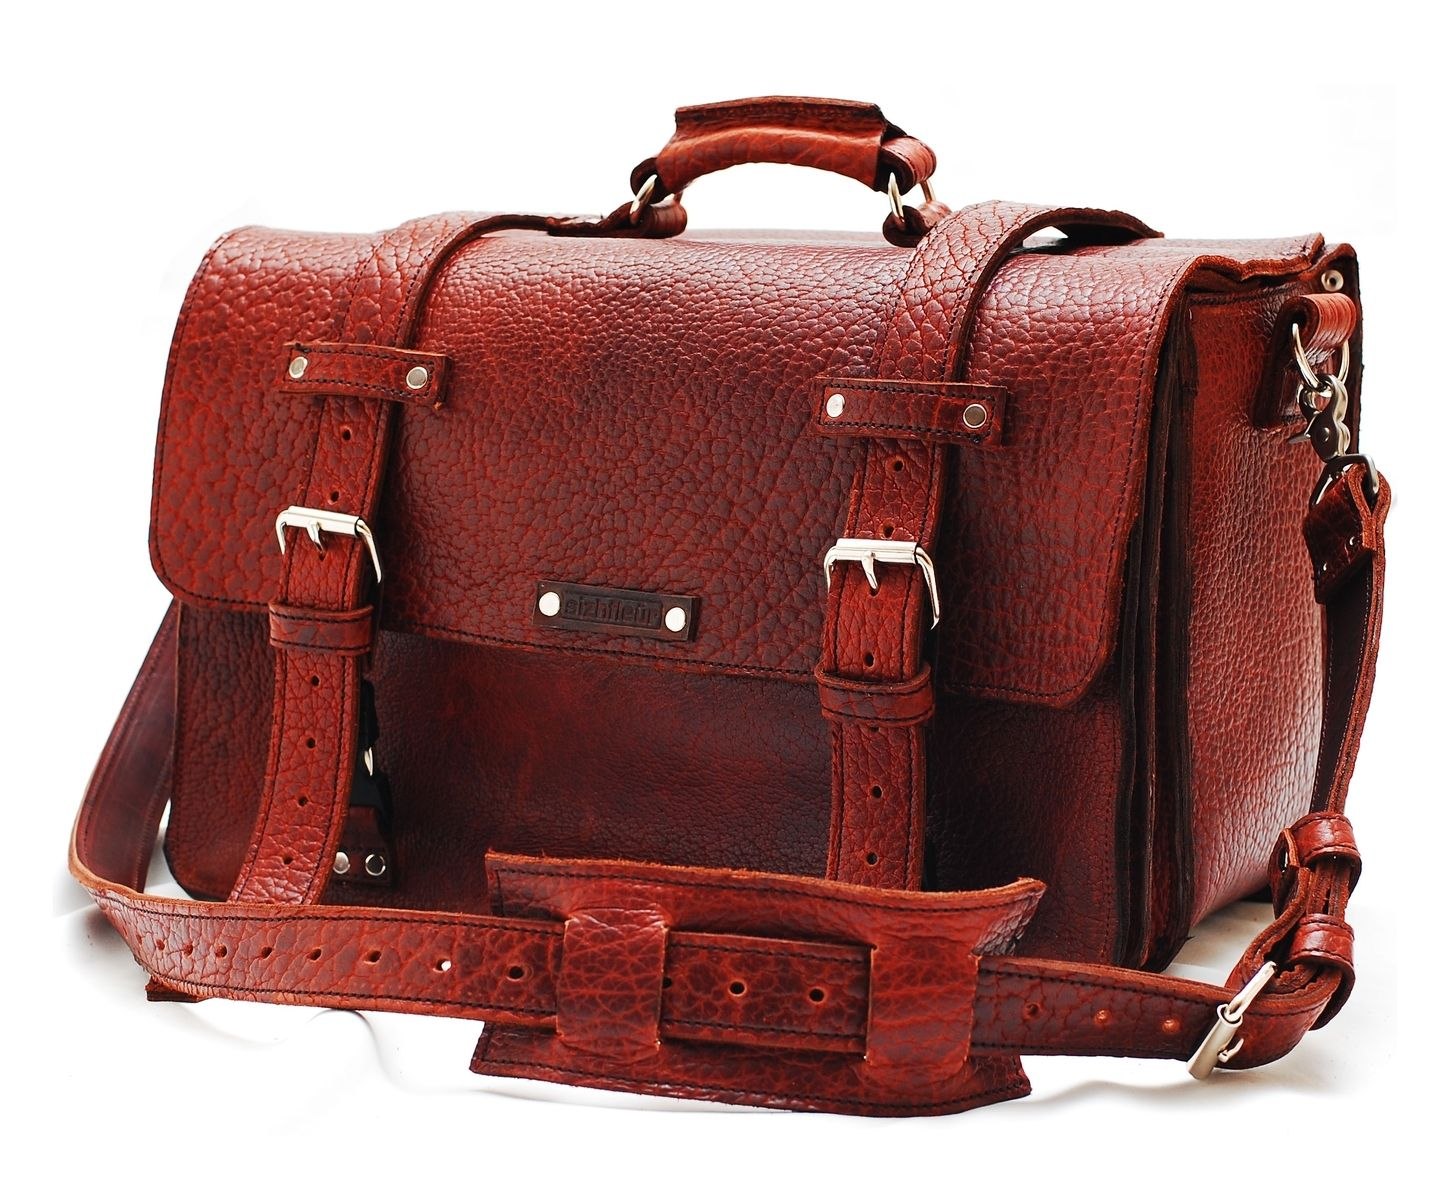 A Hand Crafted Custom Camera Case Laptop Bag Made To